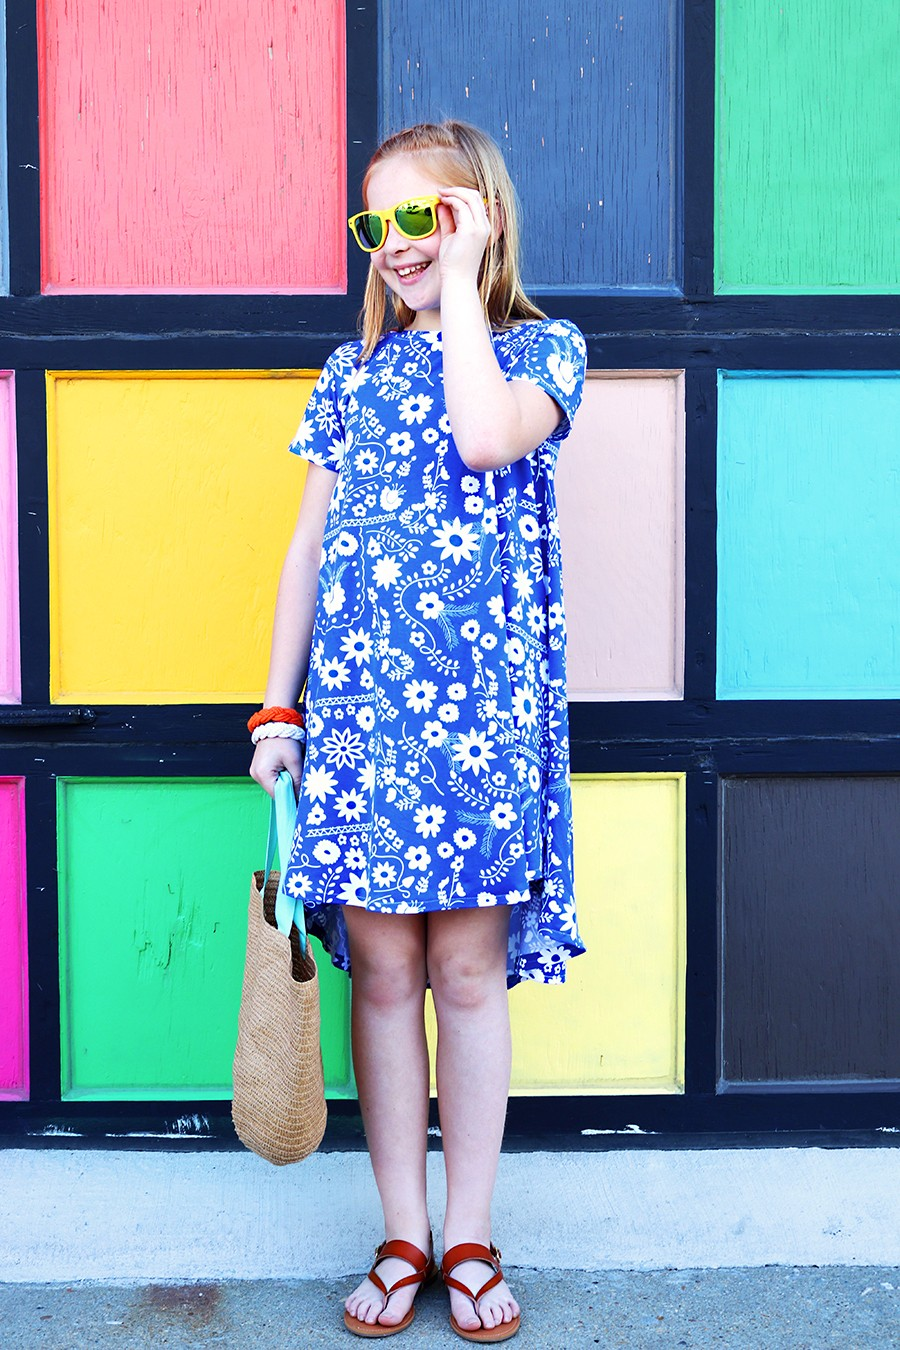 groove dress pattern for pre-teens